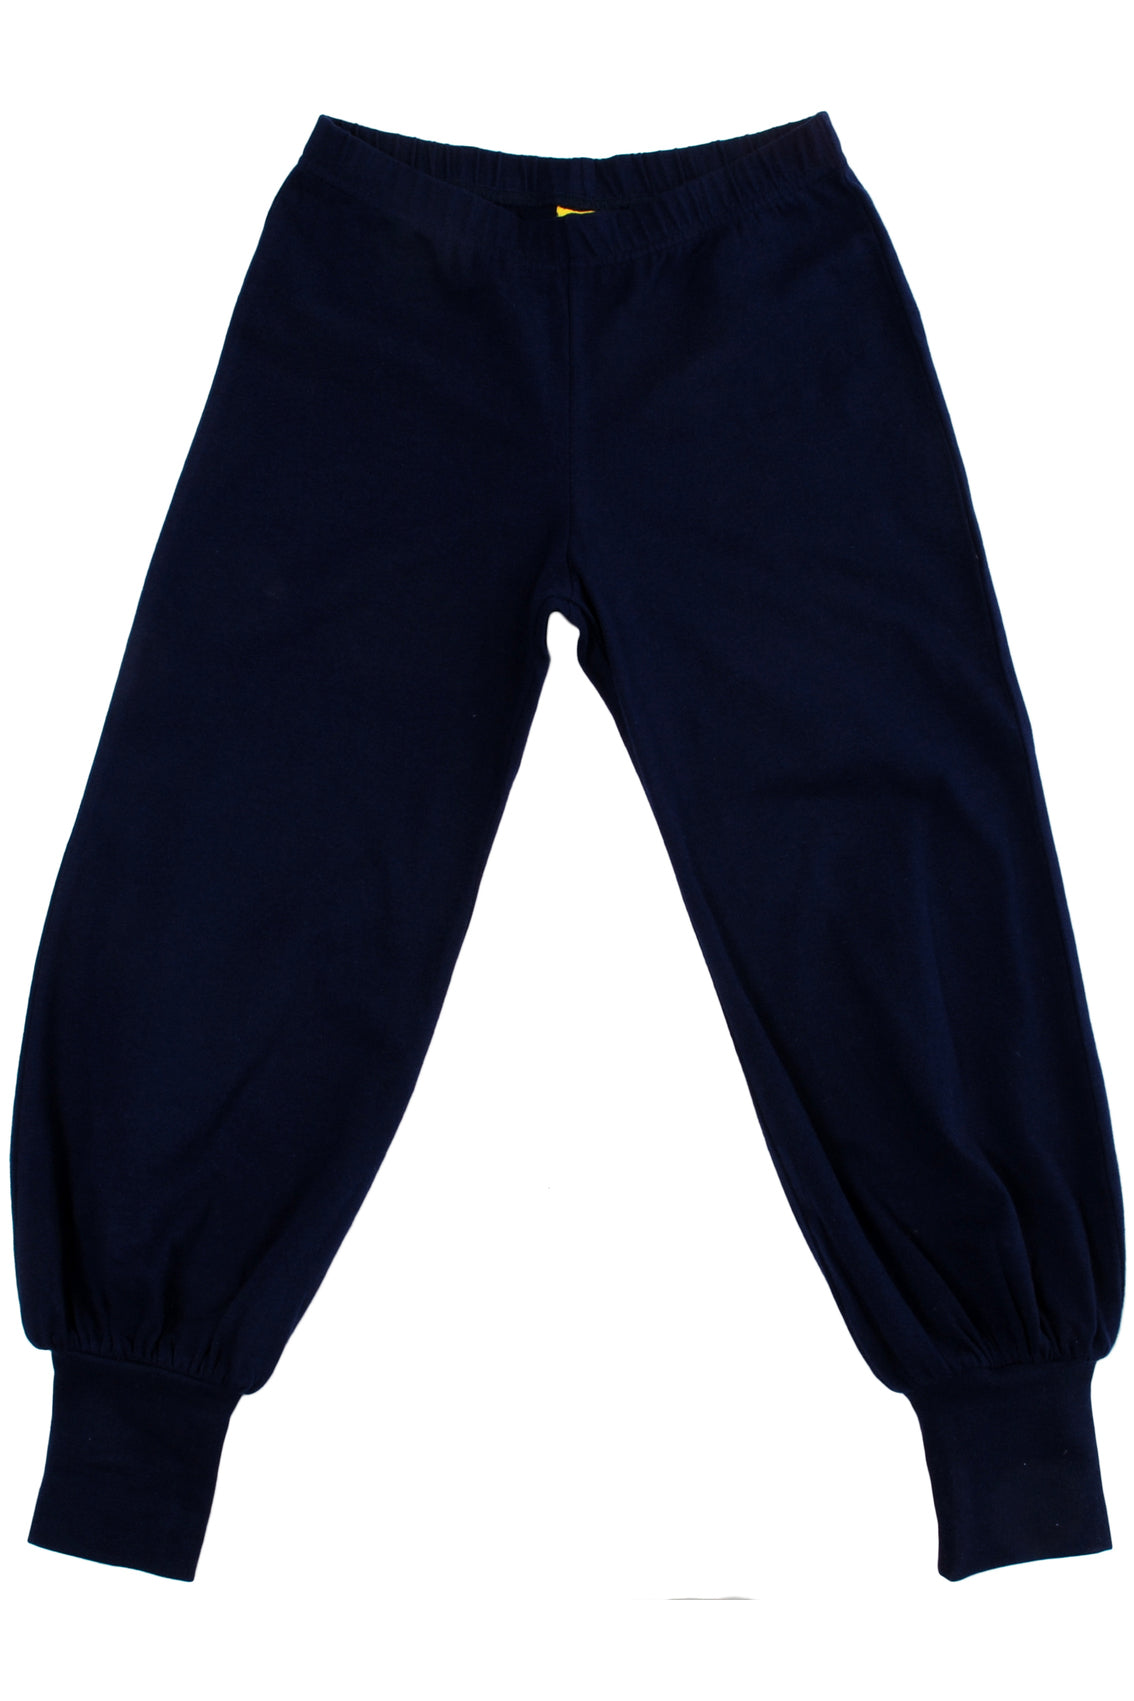 Baggy Pants Dark Blue - More than a FLING Fashion - Snugglefox